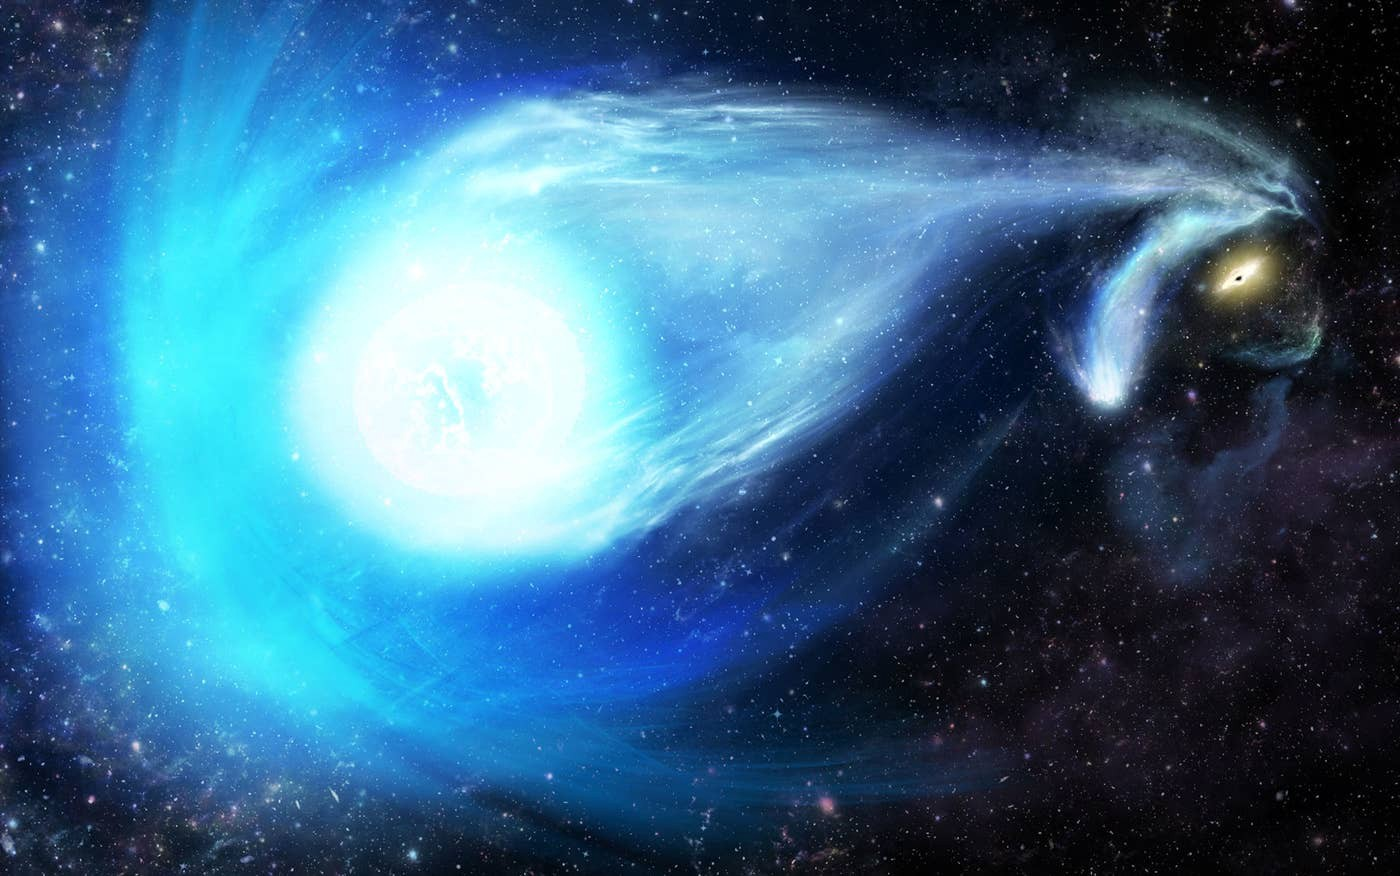 Discovery of an Unbound Hypervelocity Star in the Milky Way Halo